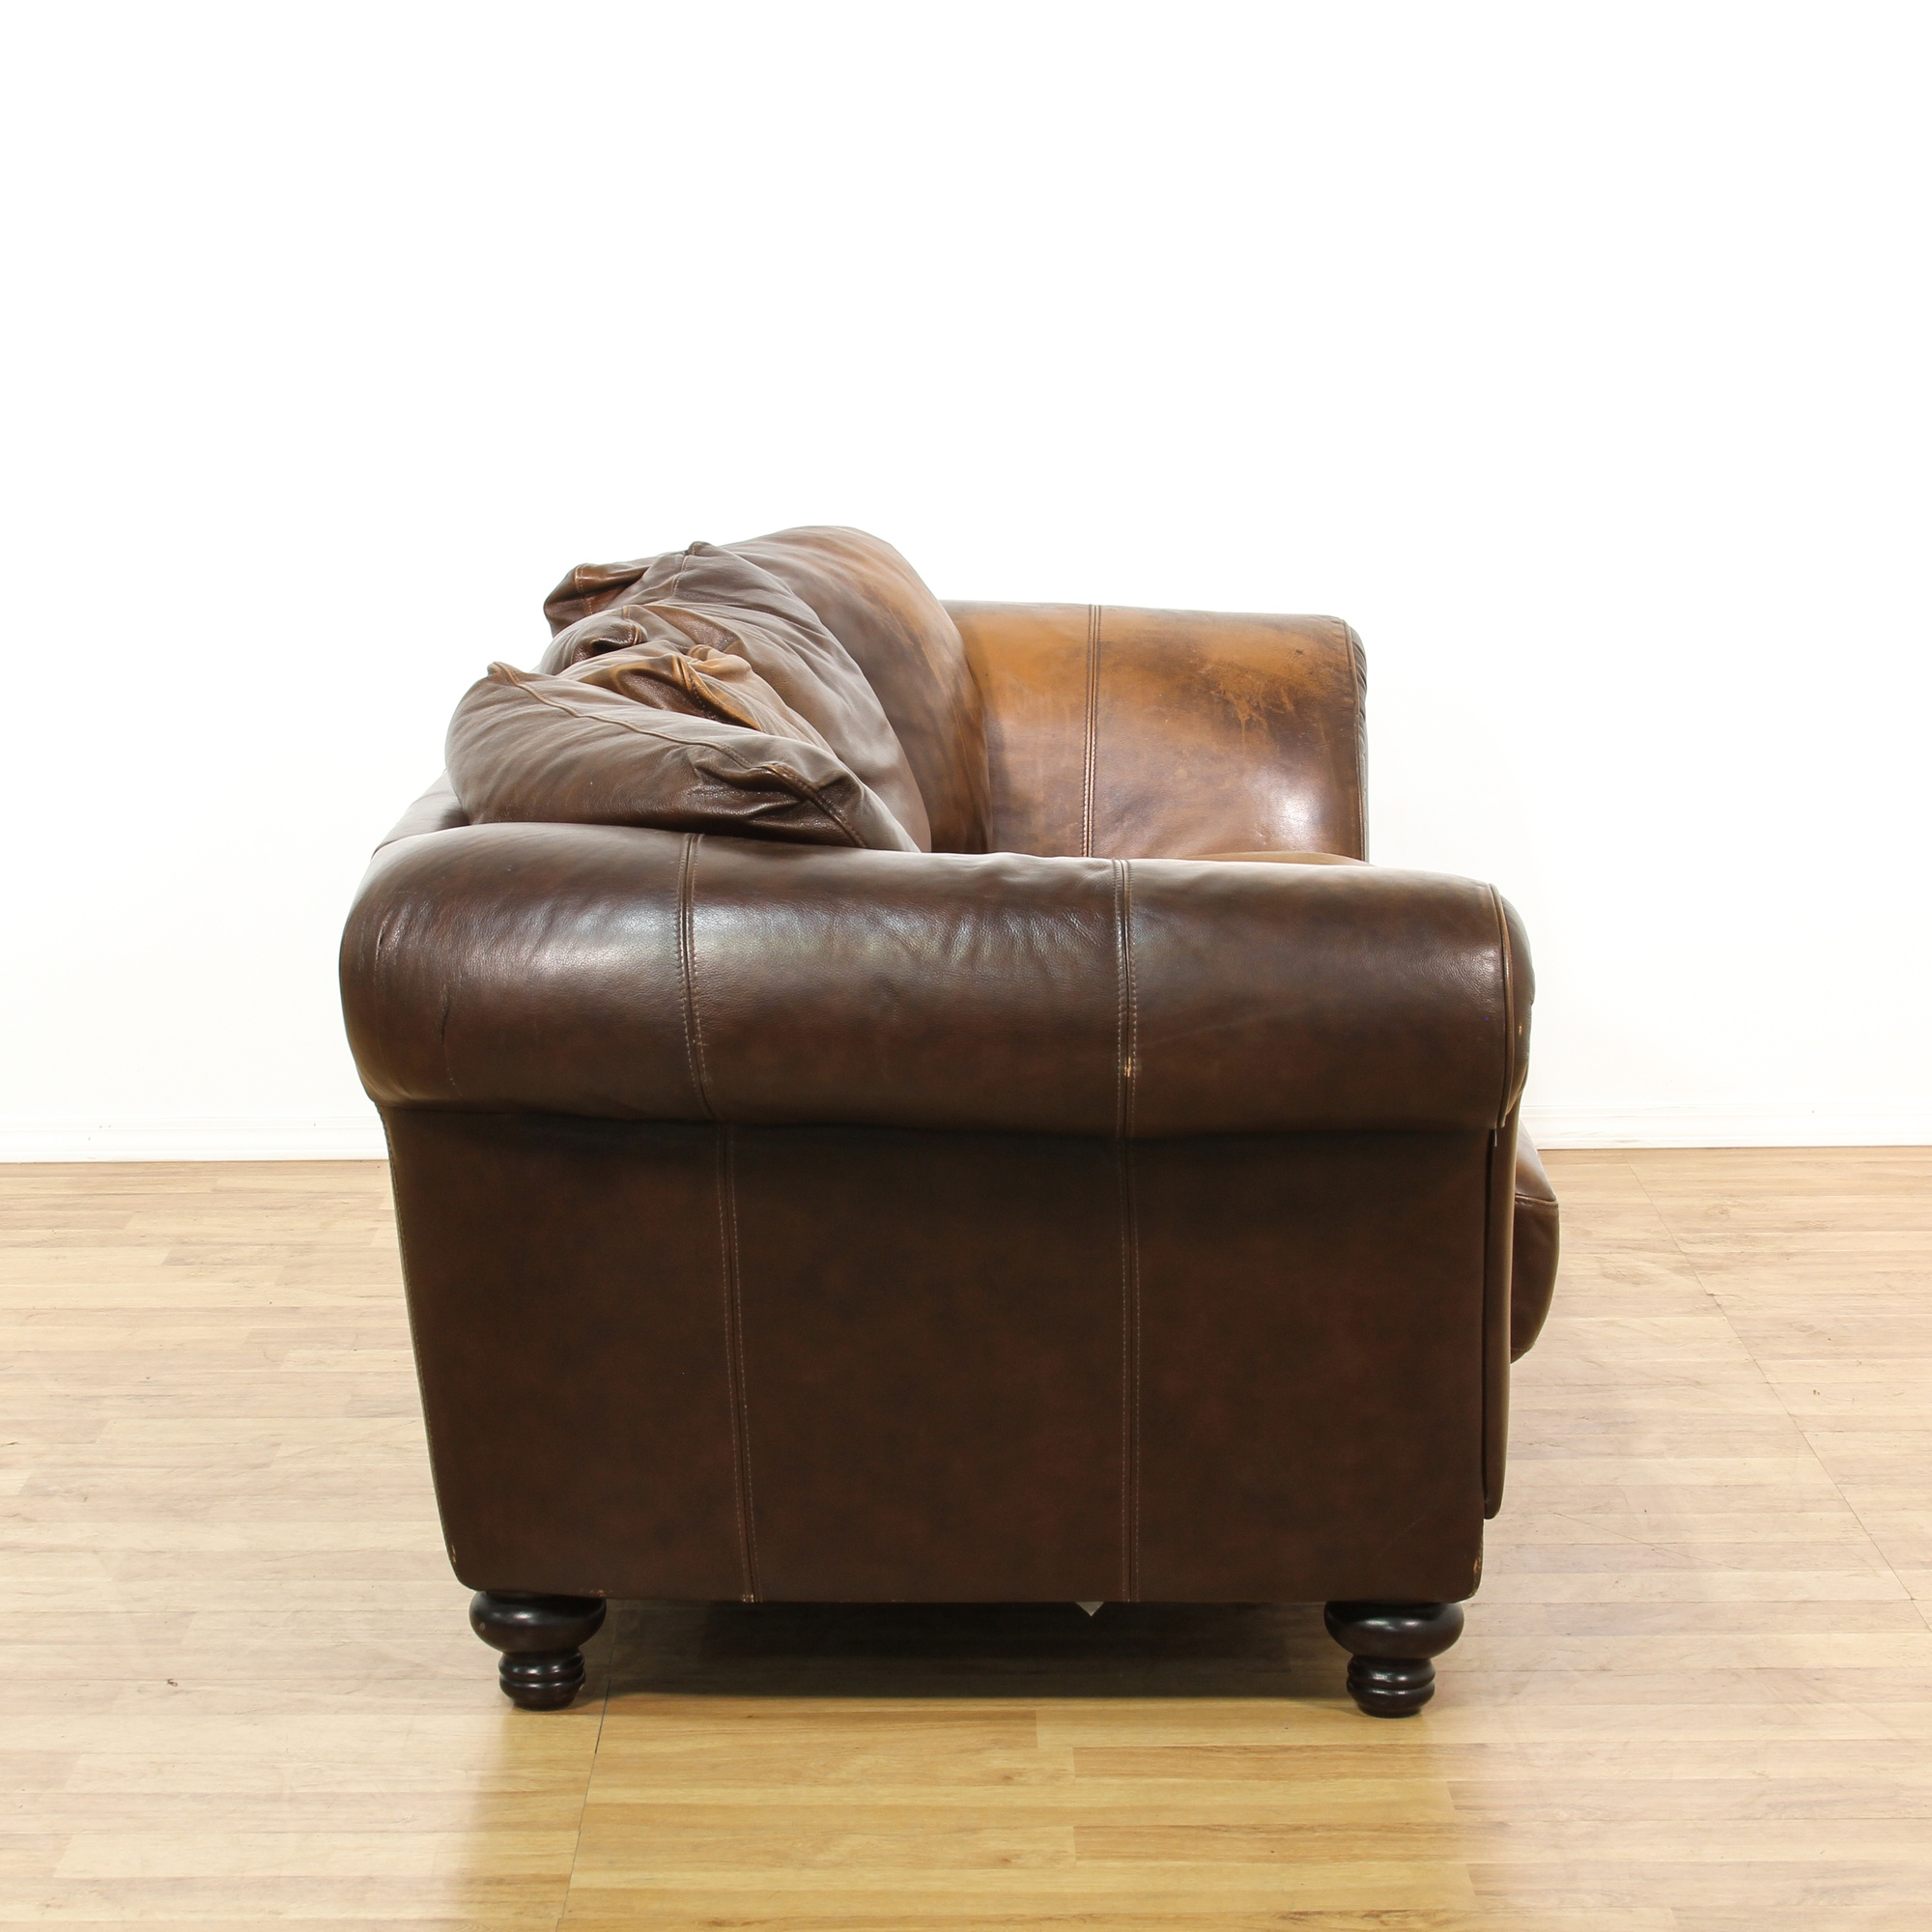 Vintage Upholstered Leather Sofa: Distressed Brown Leather Upholstered Sofa